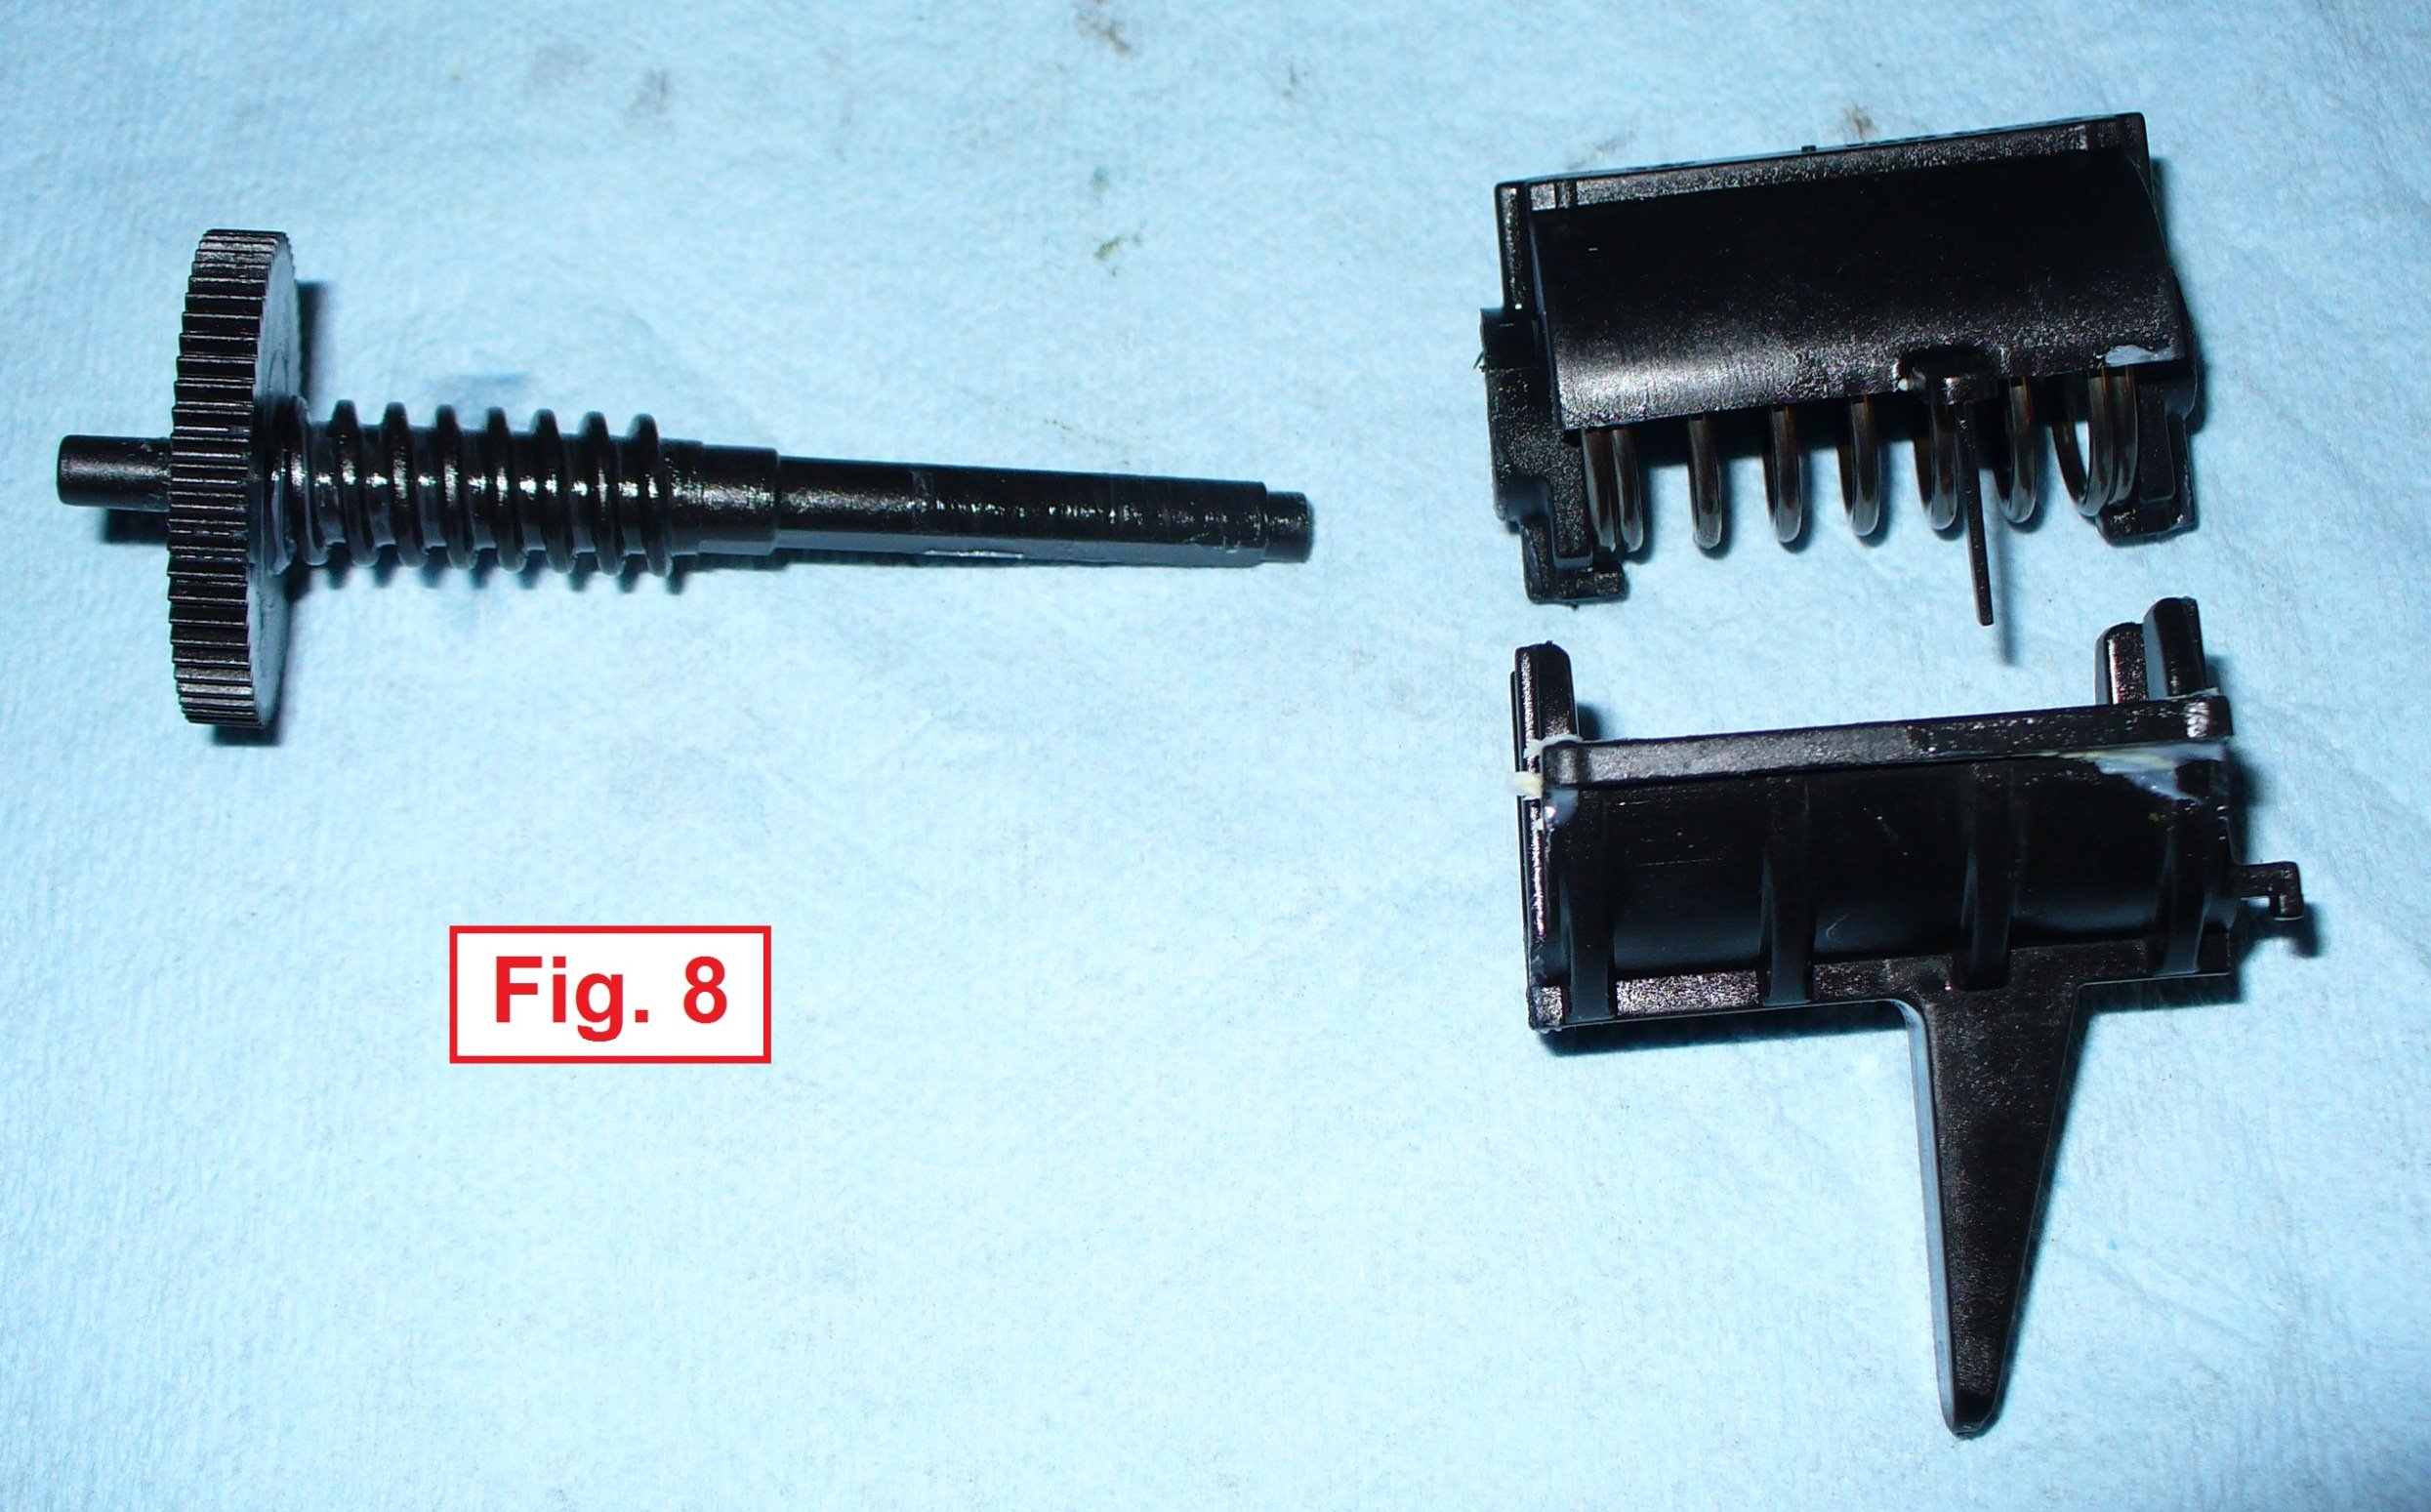 4WD Actuator 0502-296 (3-wire) removal, disassembly, and ...